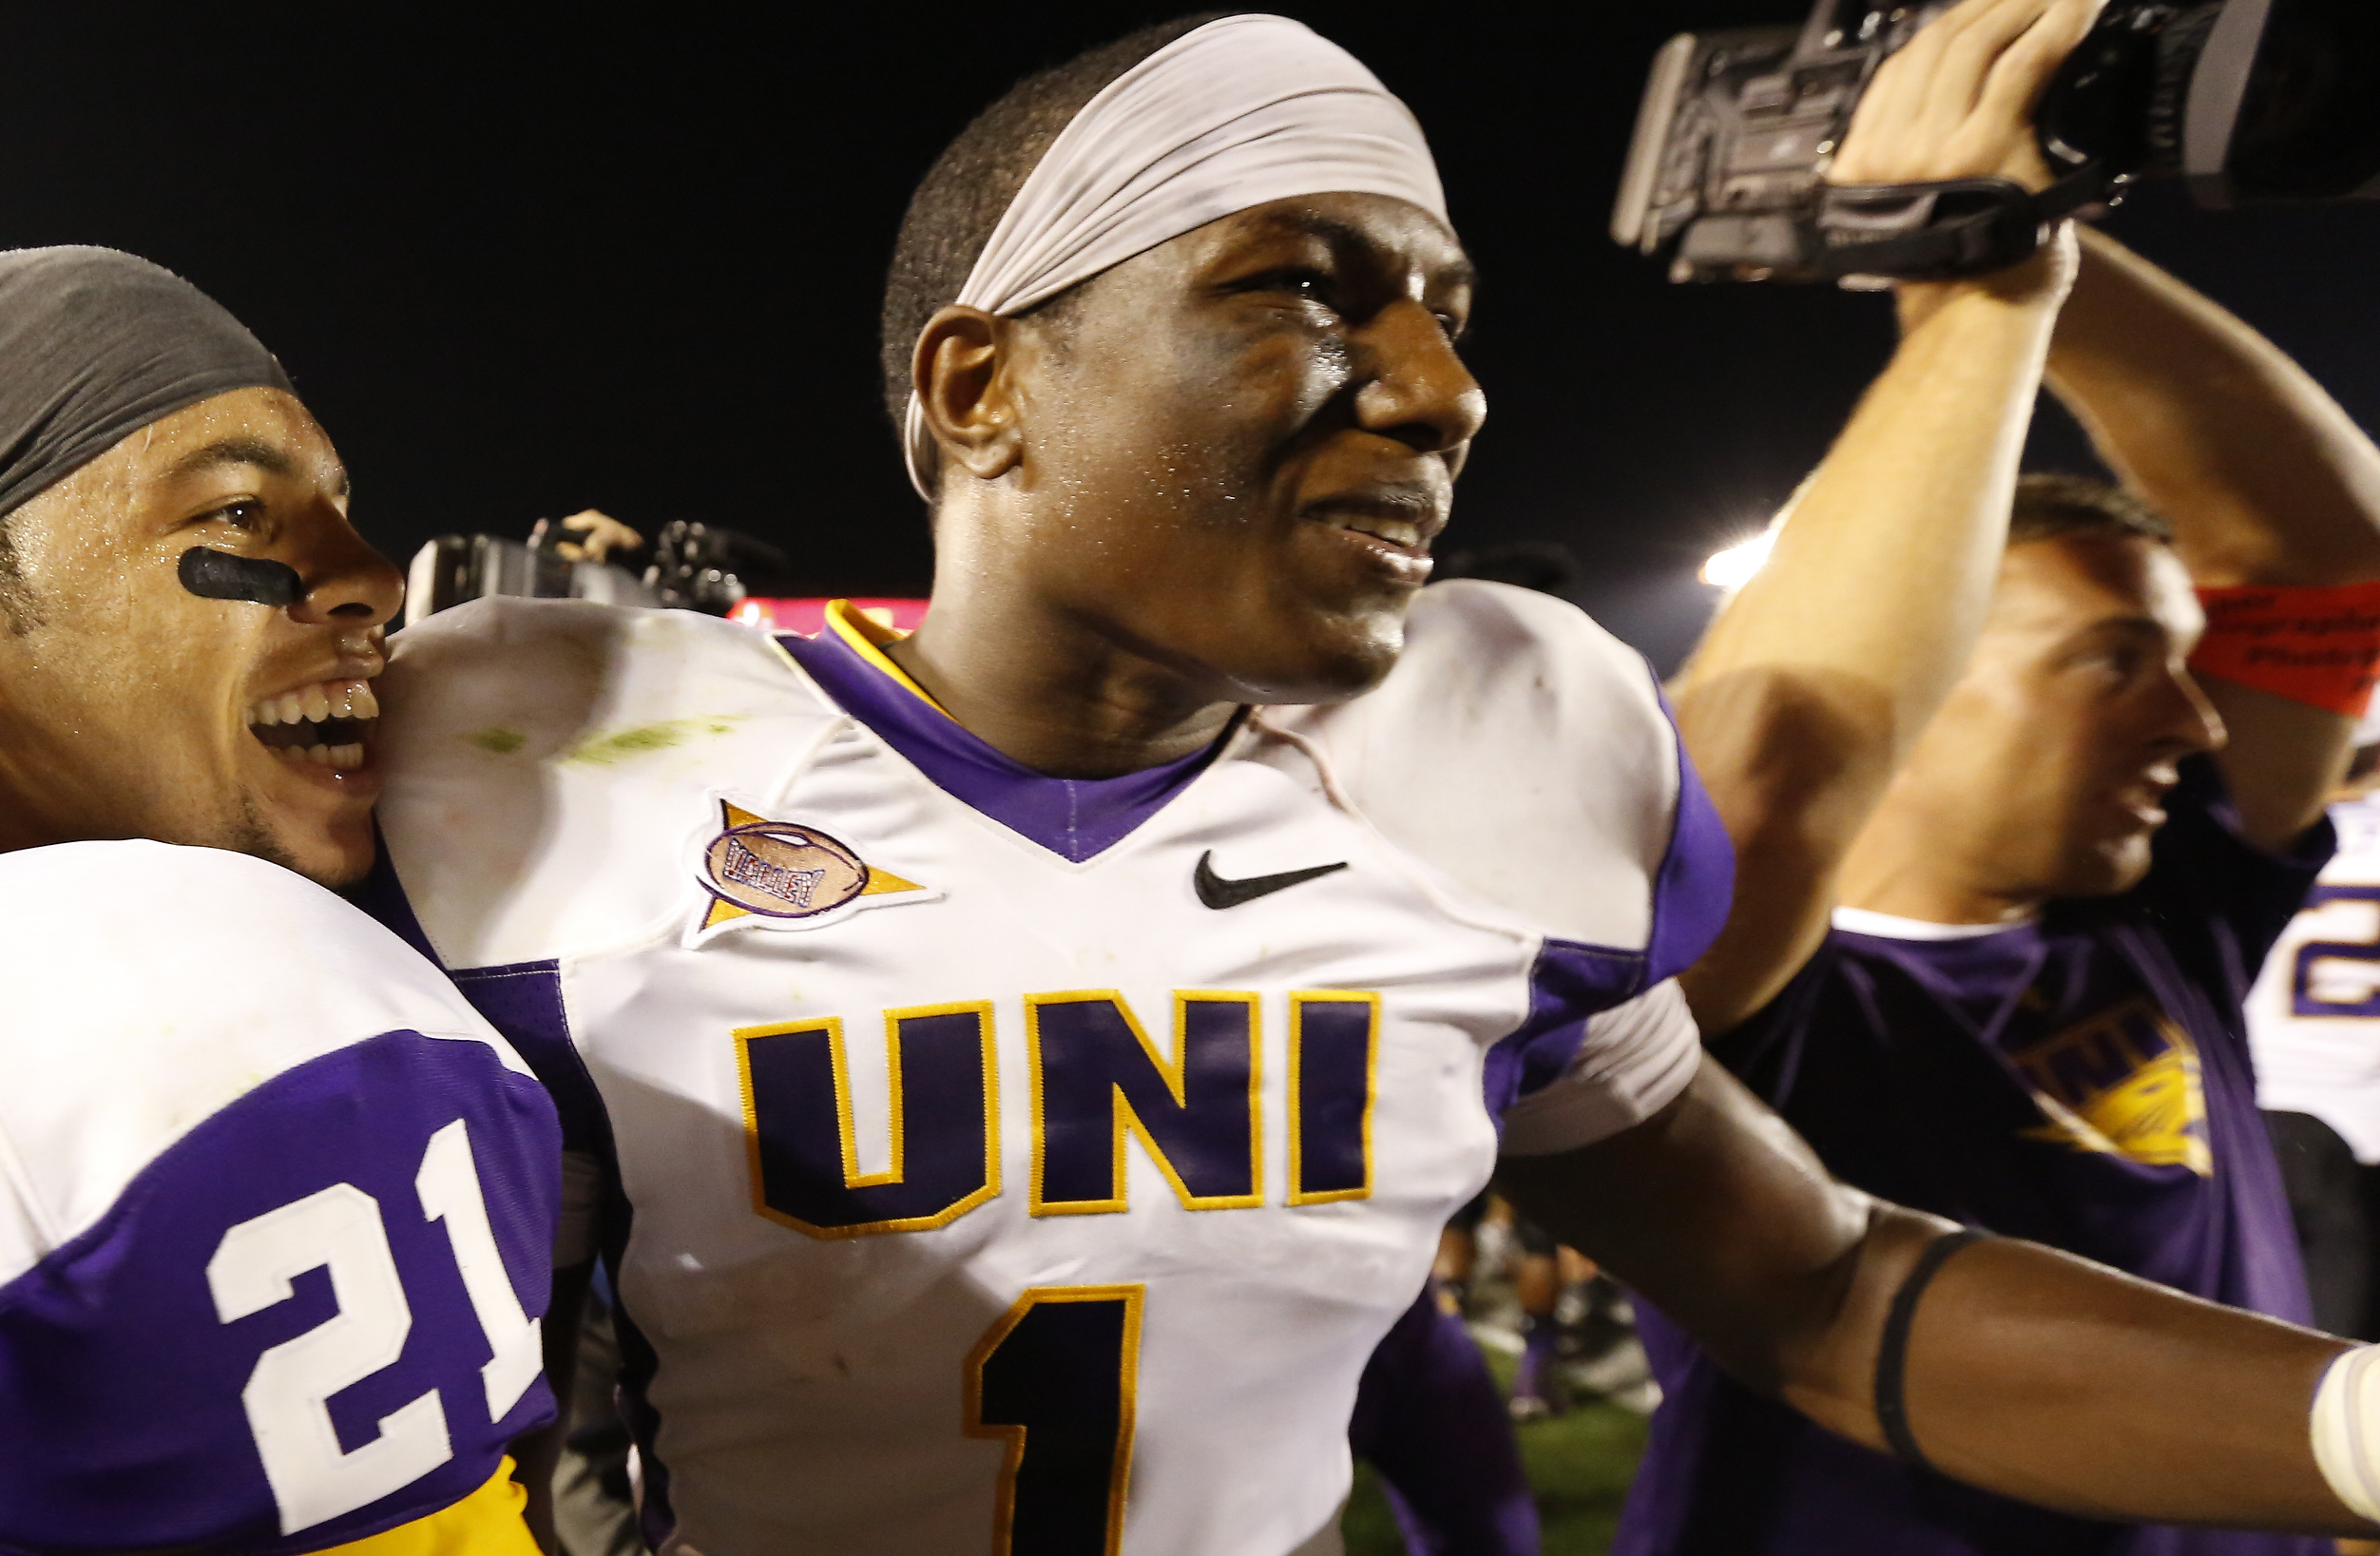 AMES, IA - AUGUST 31:  Wide receiver Phil Wright #21 of the Northern Iowa Panthers celebrates with teammate defensive back Deiondre' Hall #1 after defeating the Iowa State Cyclones 28-20 at Jack Trice Stadium on August 31, 2013 in Ames, Iowa. (Photo by David K Purdy/Getty Images)